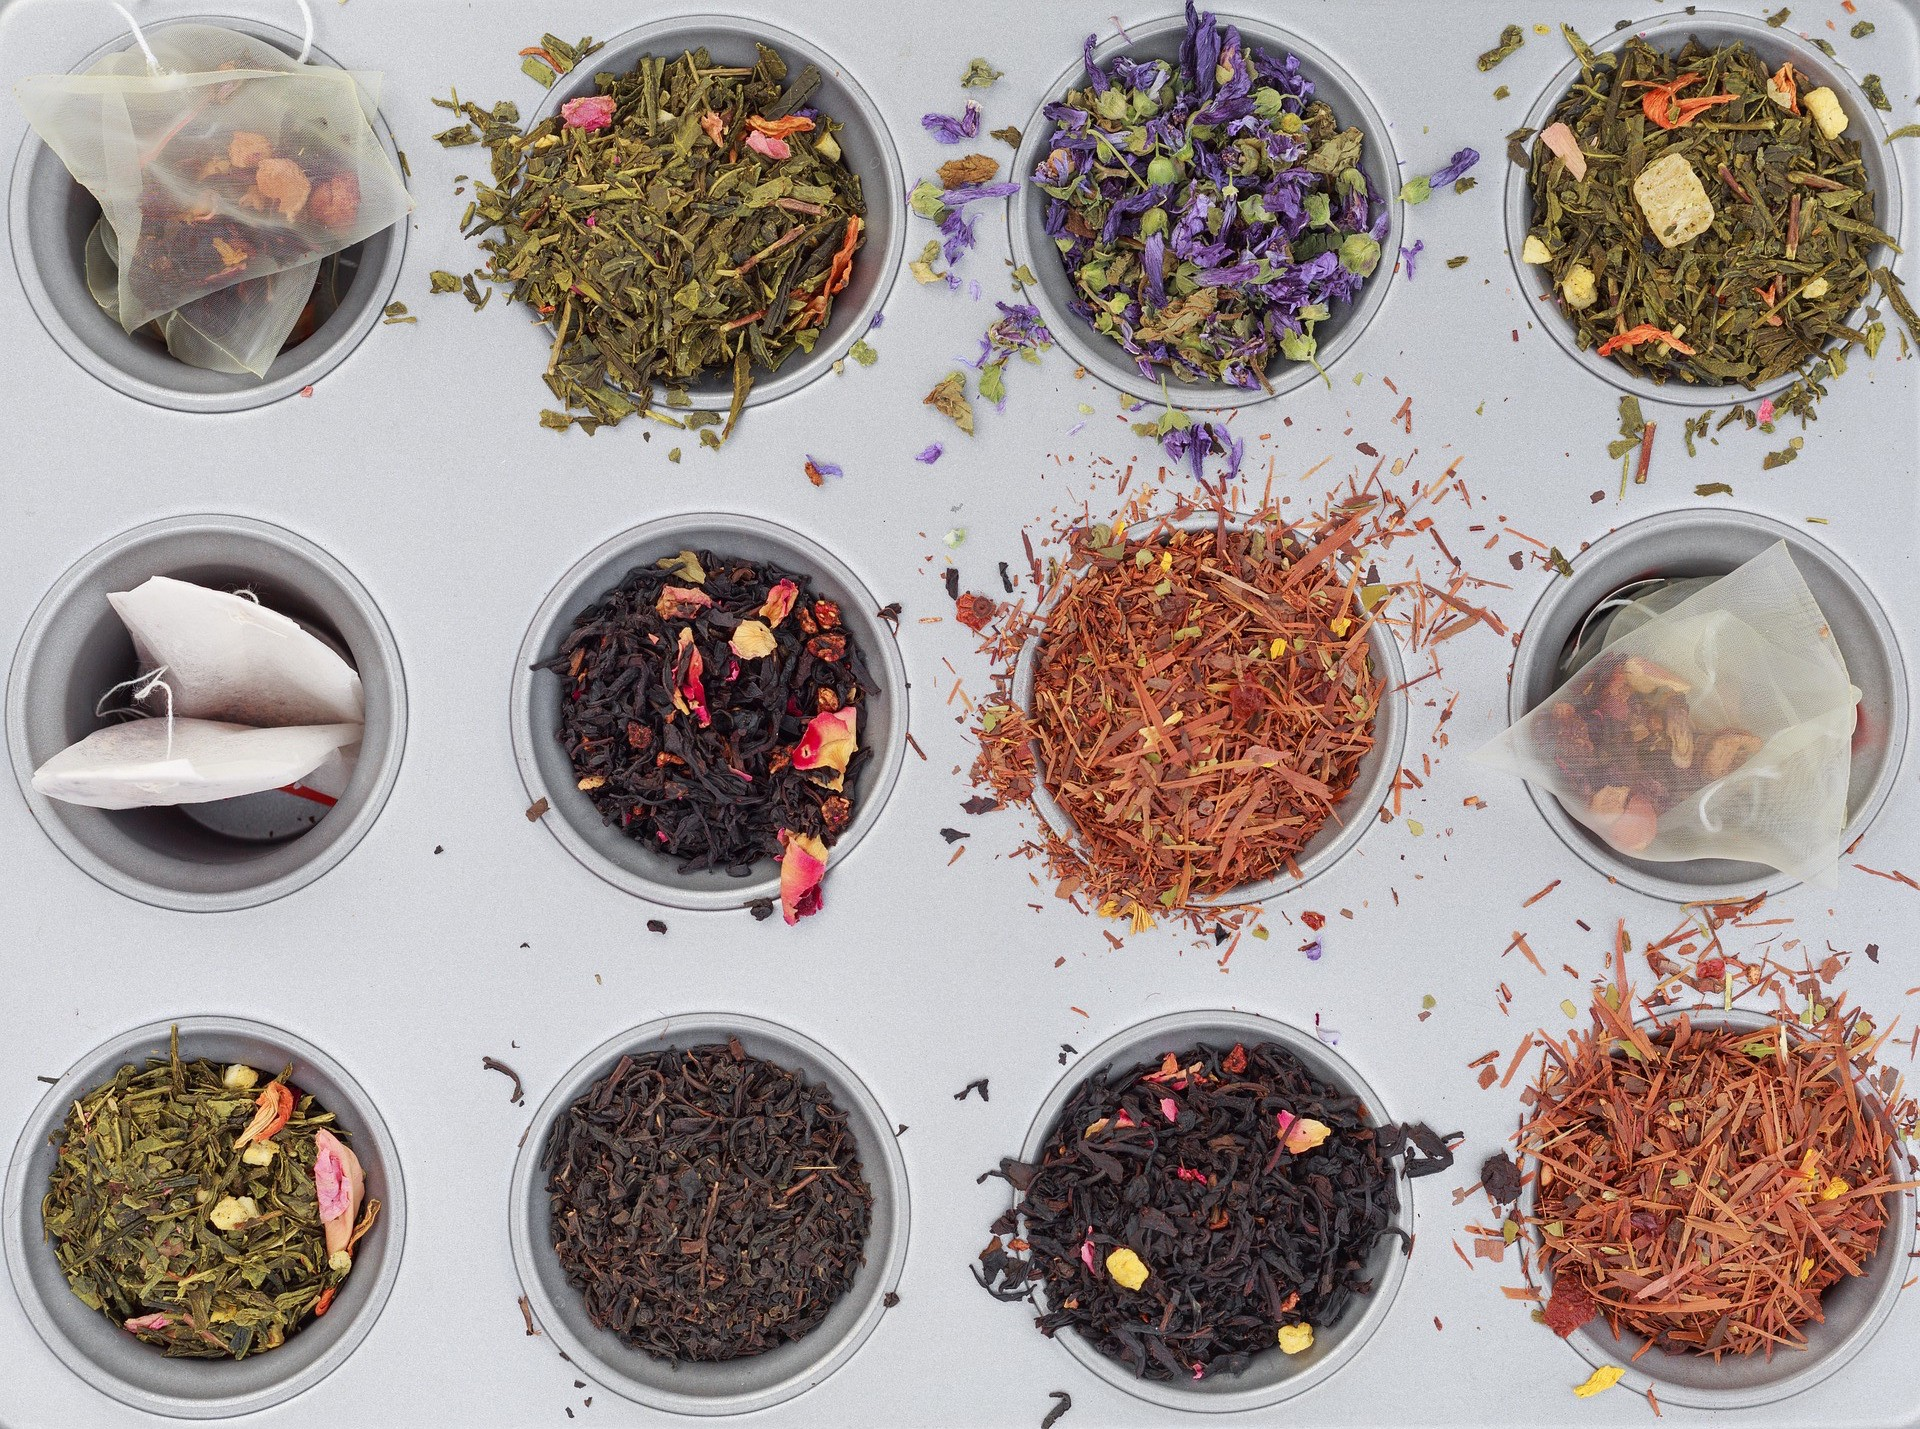 A variety of loose leaf and bagged teas in cups of a baking tray